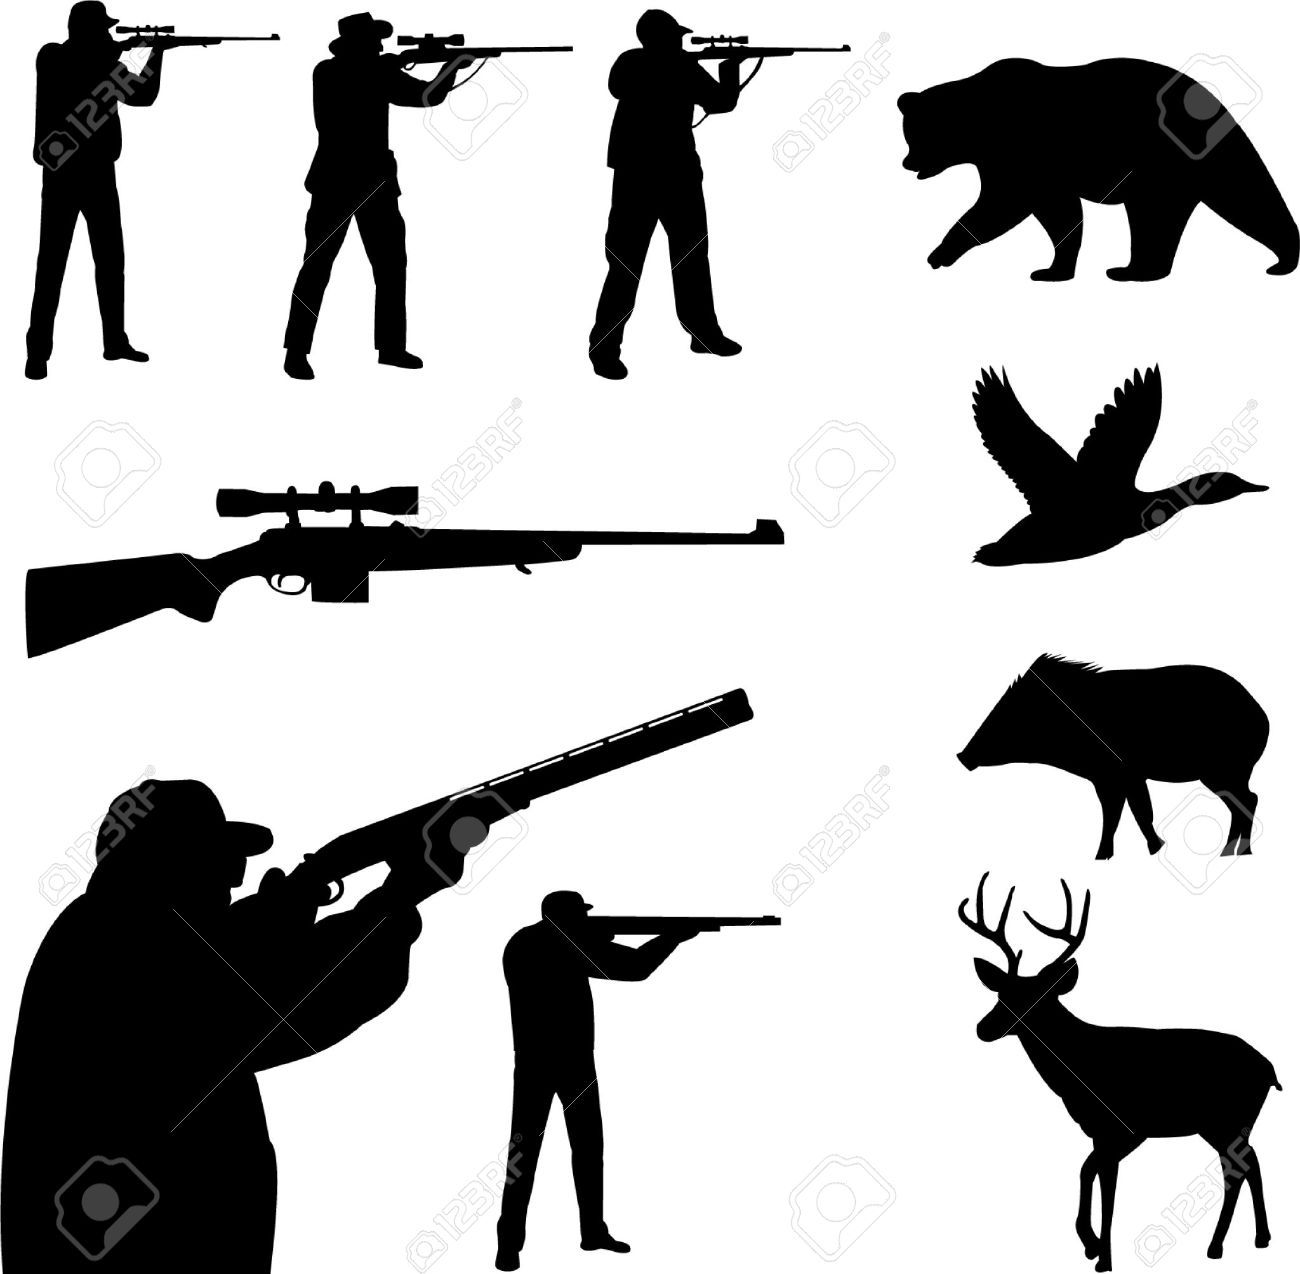 Hunting clipart hunting equipment. Deer cliparts stock vector